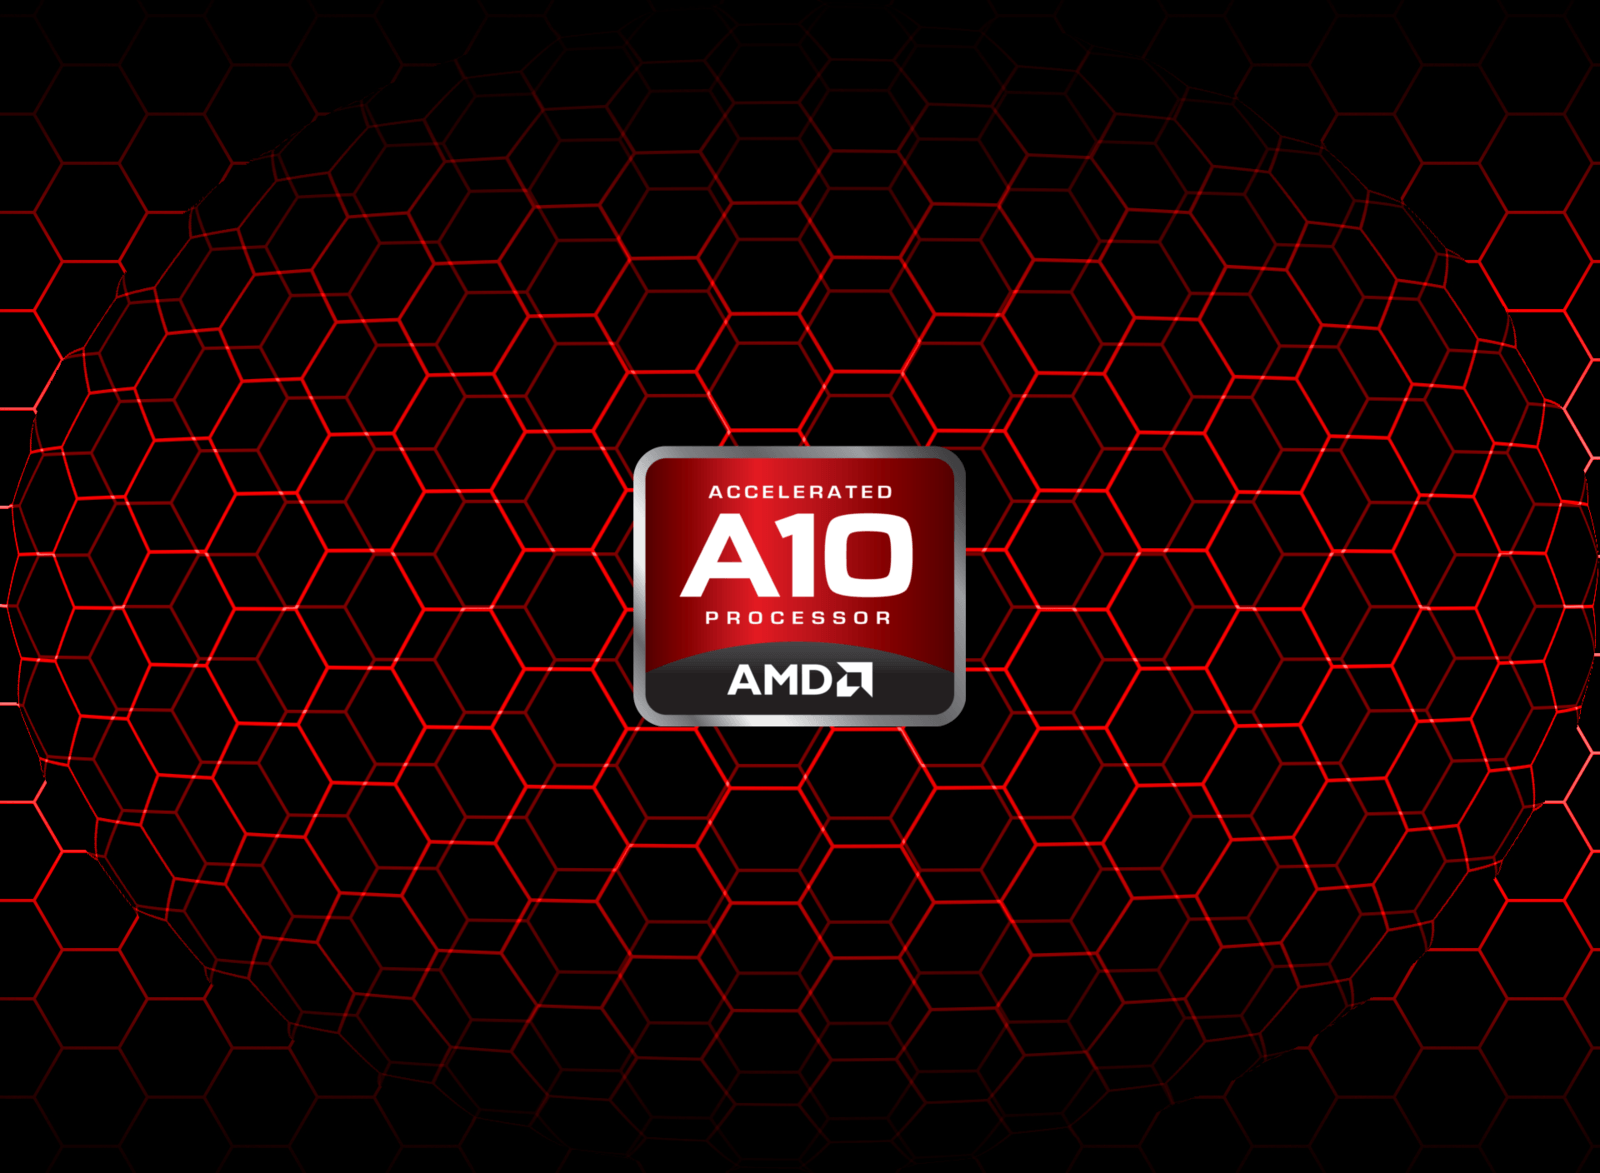 amd radeon wallpapers hd - photo #23